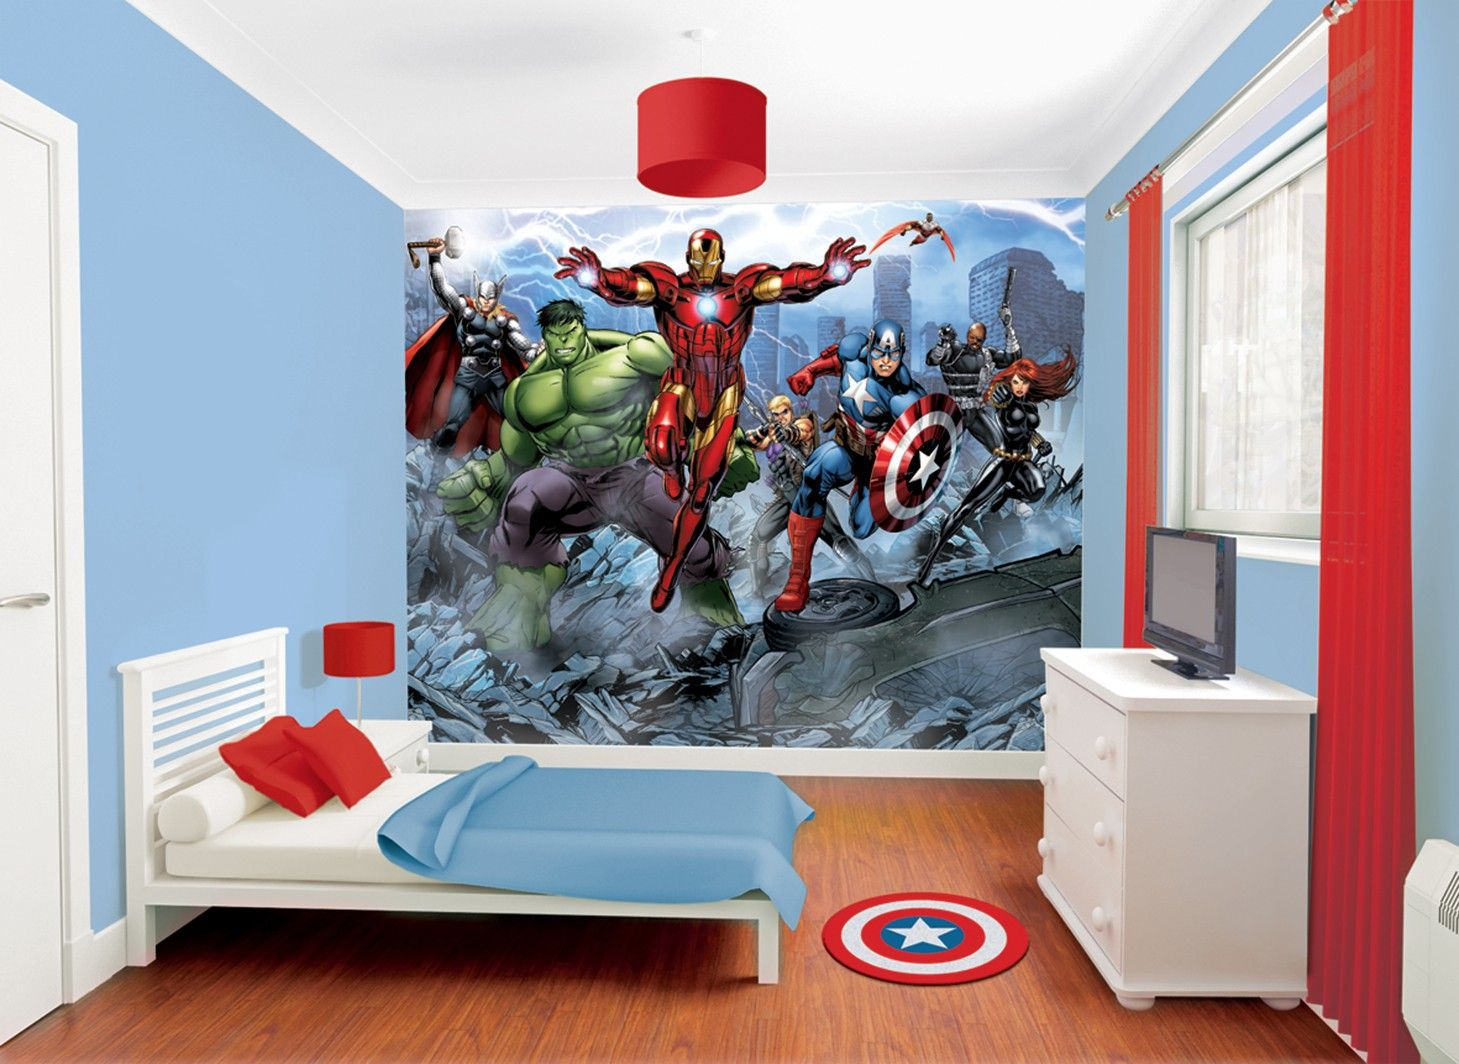 Marvel Avengers Wallpaper Murals...The boys need this for their new ...